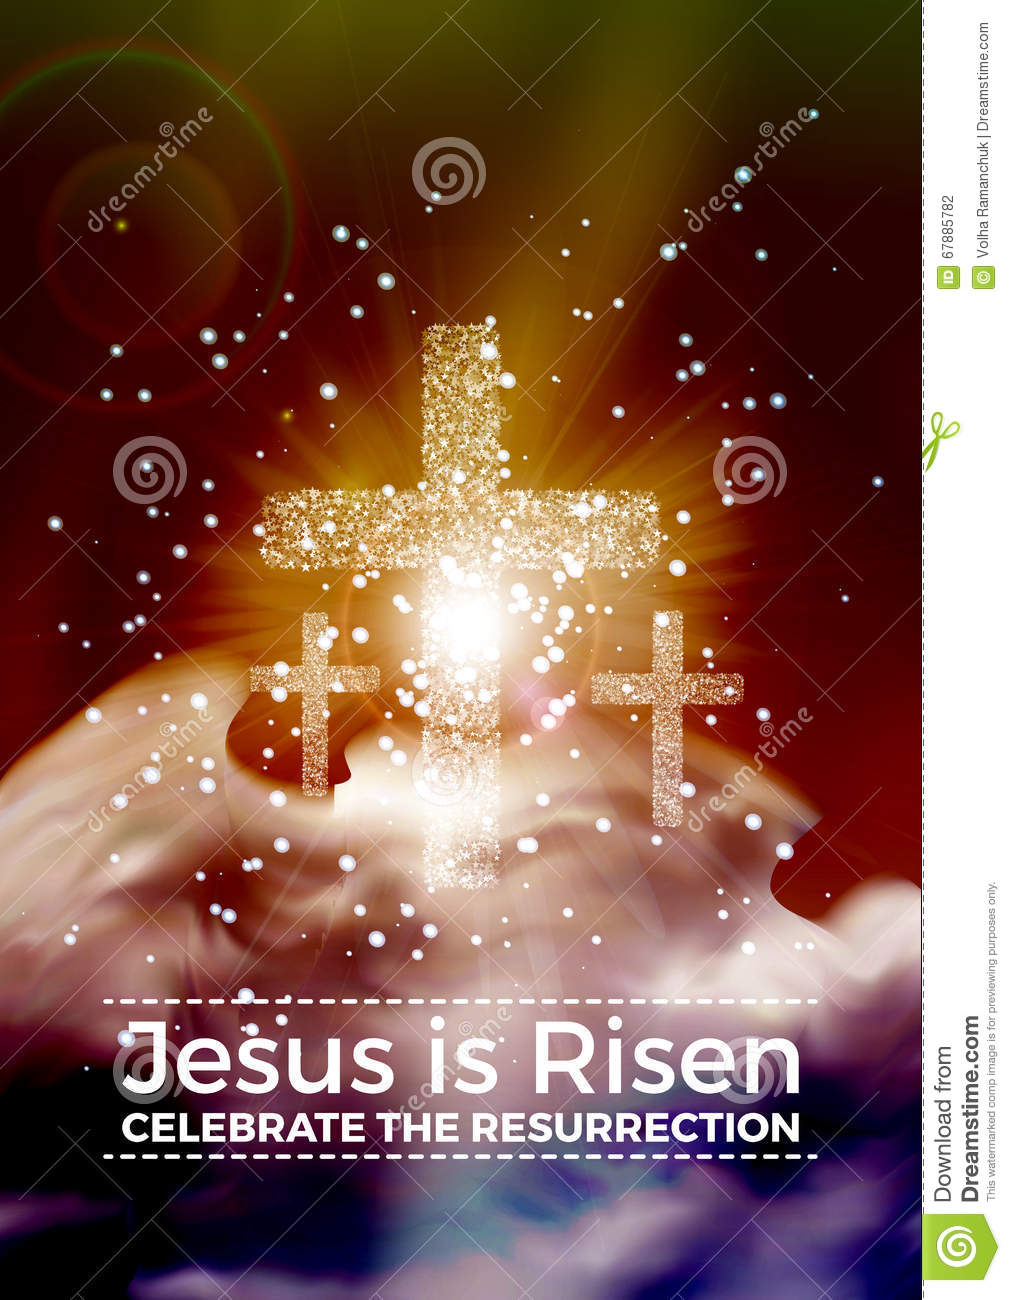 he is risen easter religious poster template with transparency